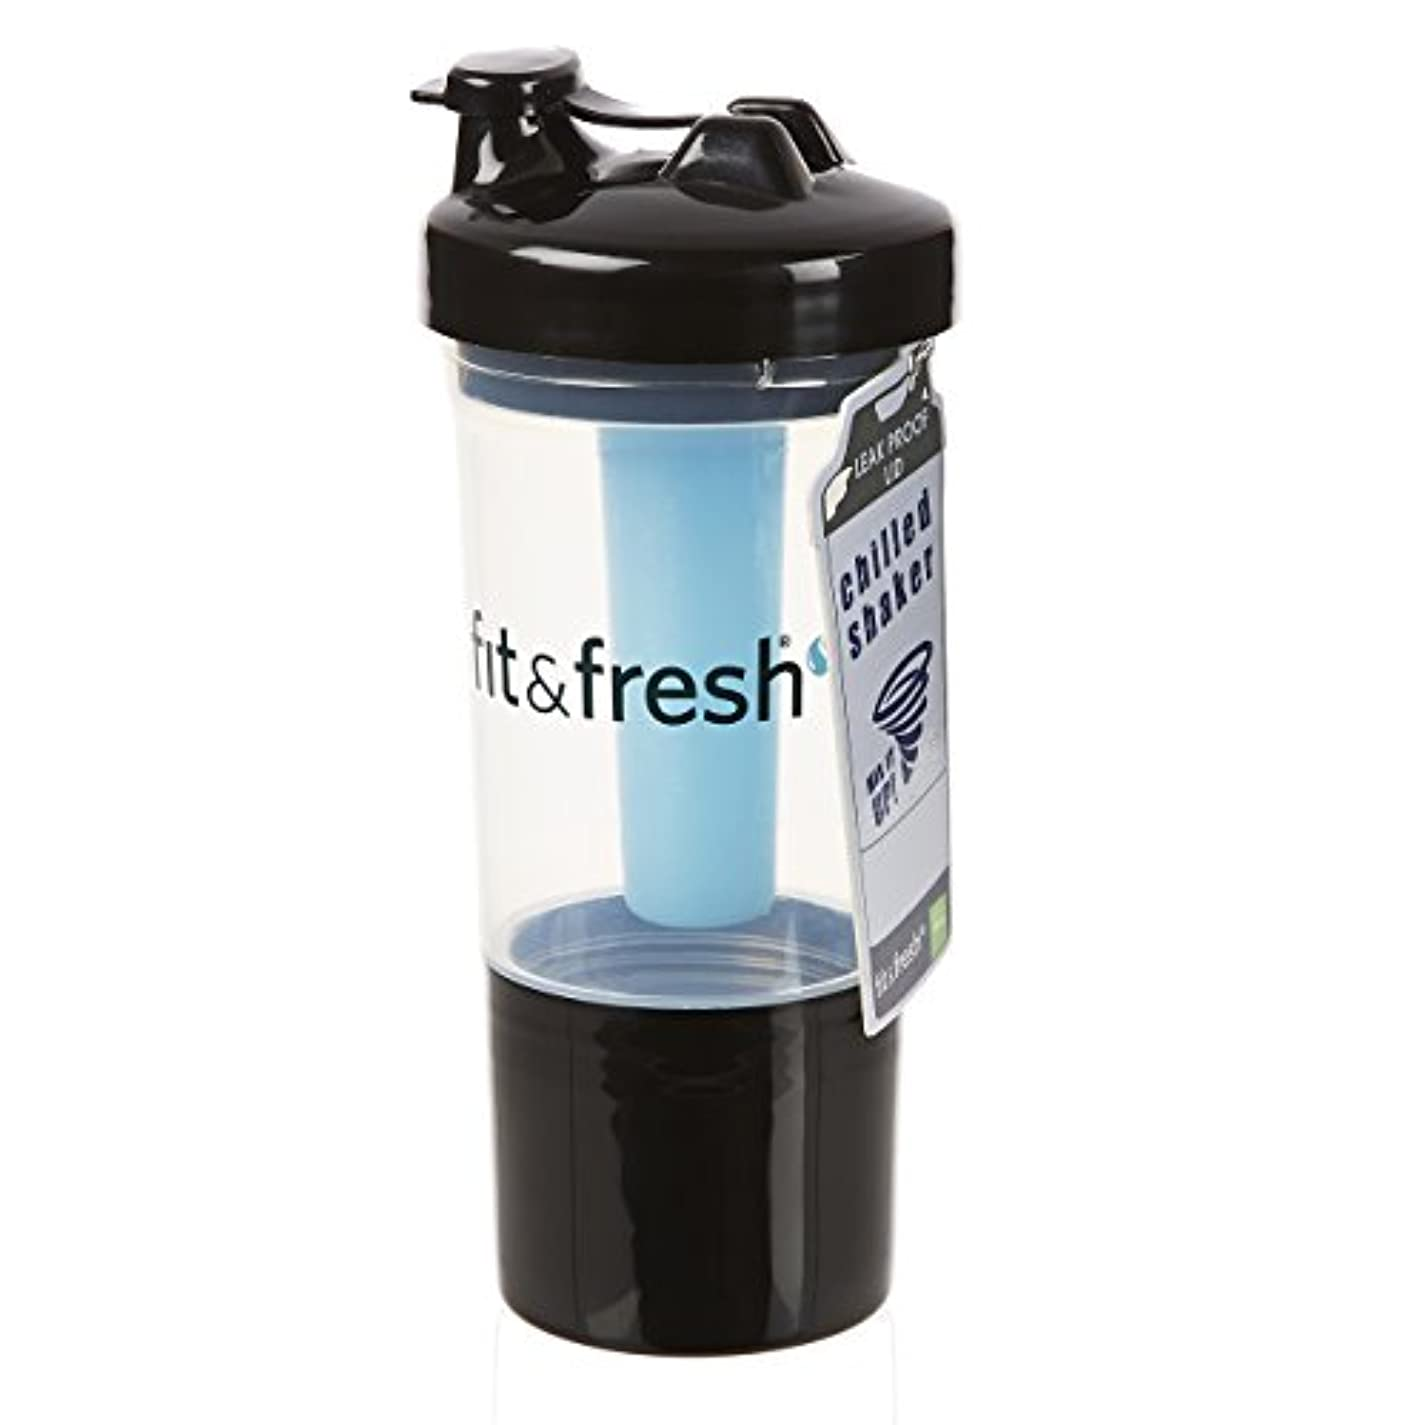 お互い元のちらつきFit & Fresh, CleanTek, Shaker Cup with Ice Wand Agitator & Storage Cup, 1 Cup